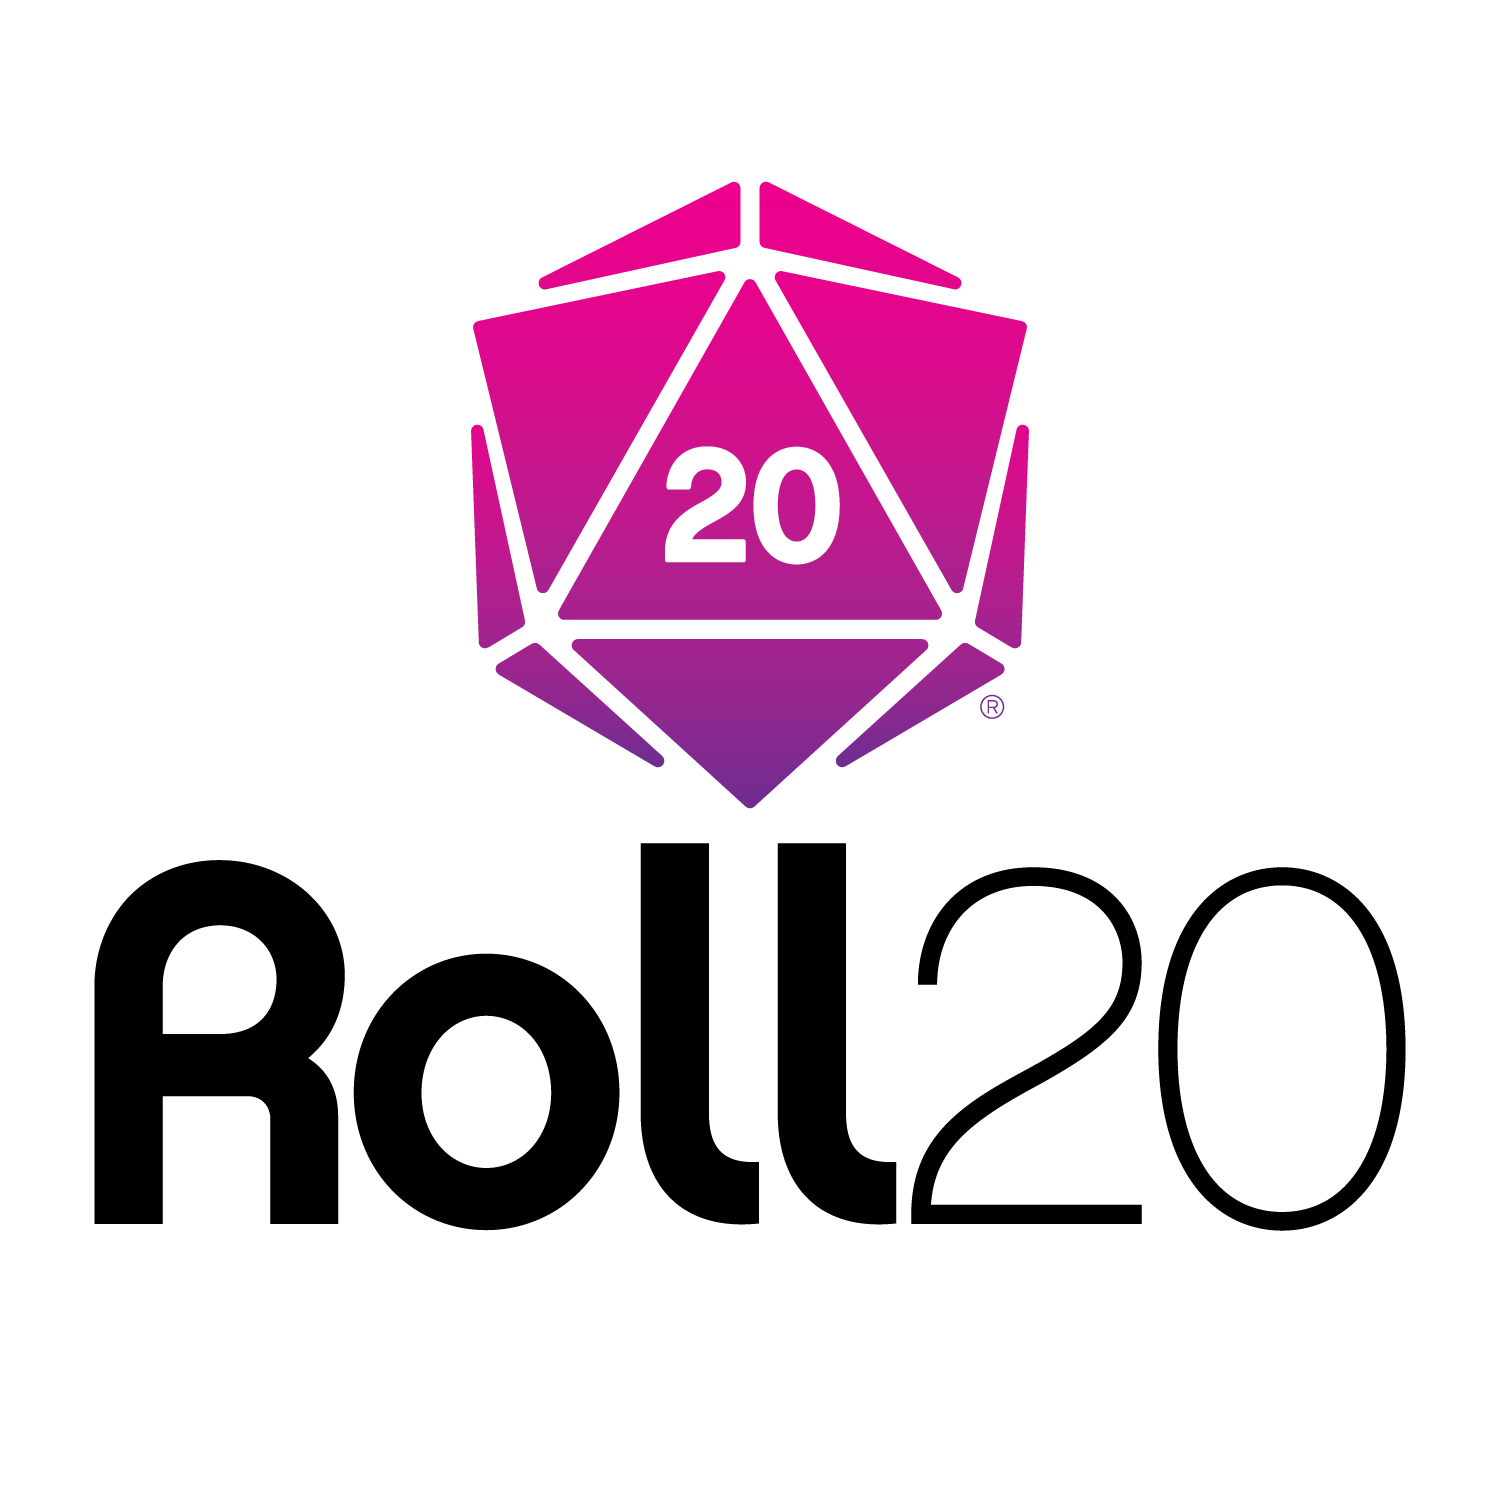 View Roll20: Online virtual tabletop for pen and paper RPGs and board games outages and uptime